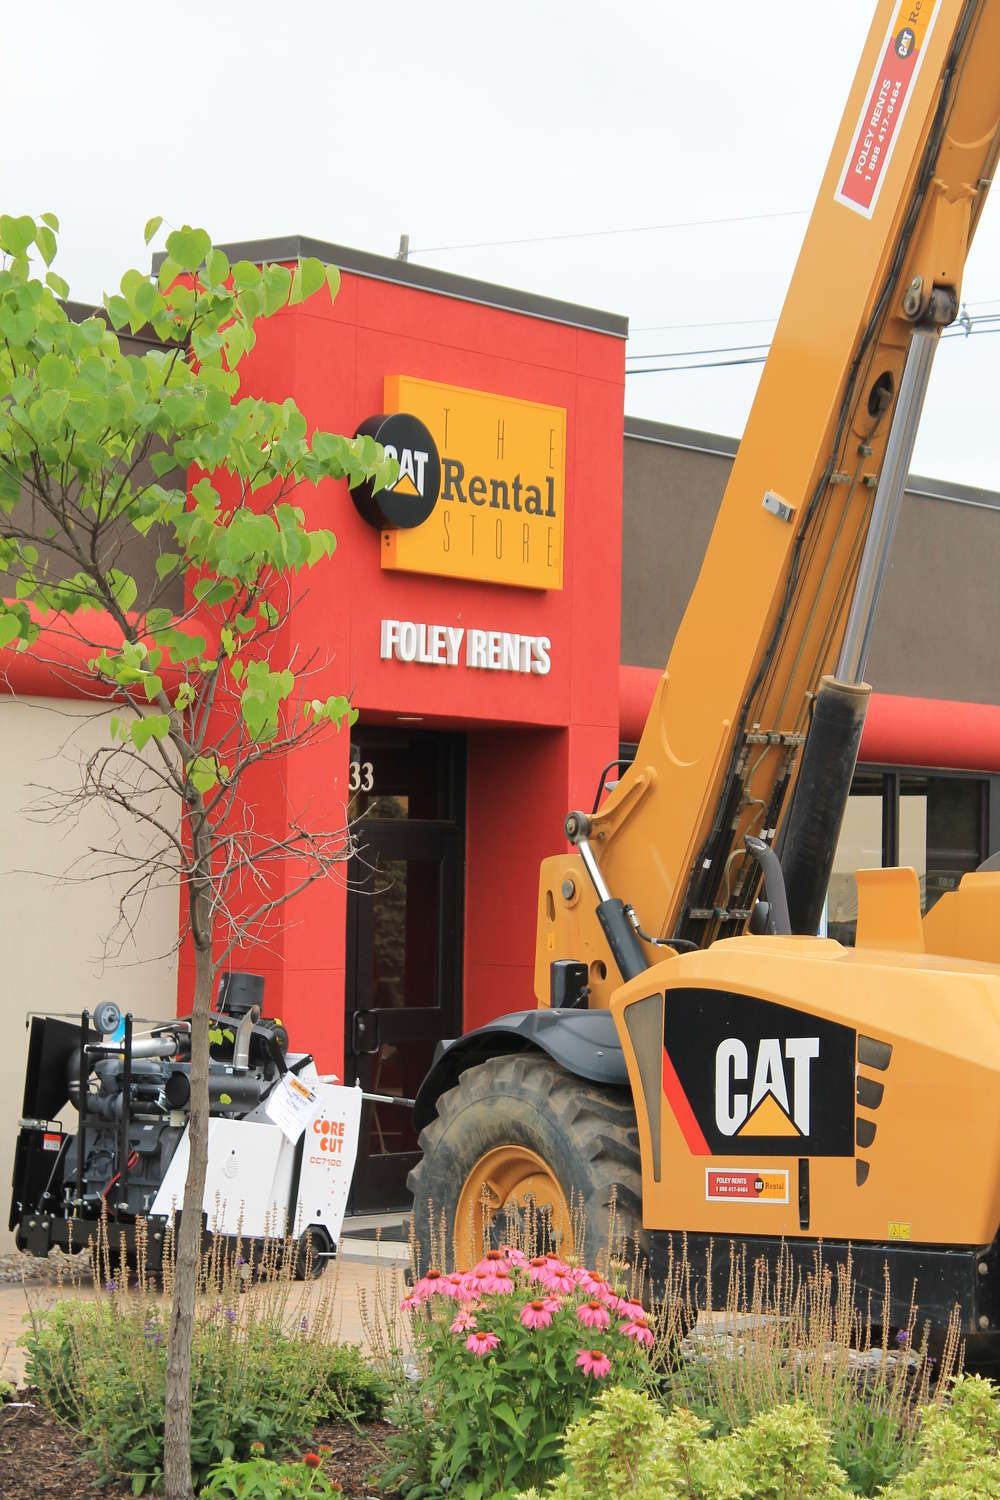 Foley Rents in Piscataway, N.J., was teh locale for Foley CAT's One Day Sale Event.